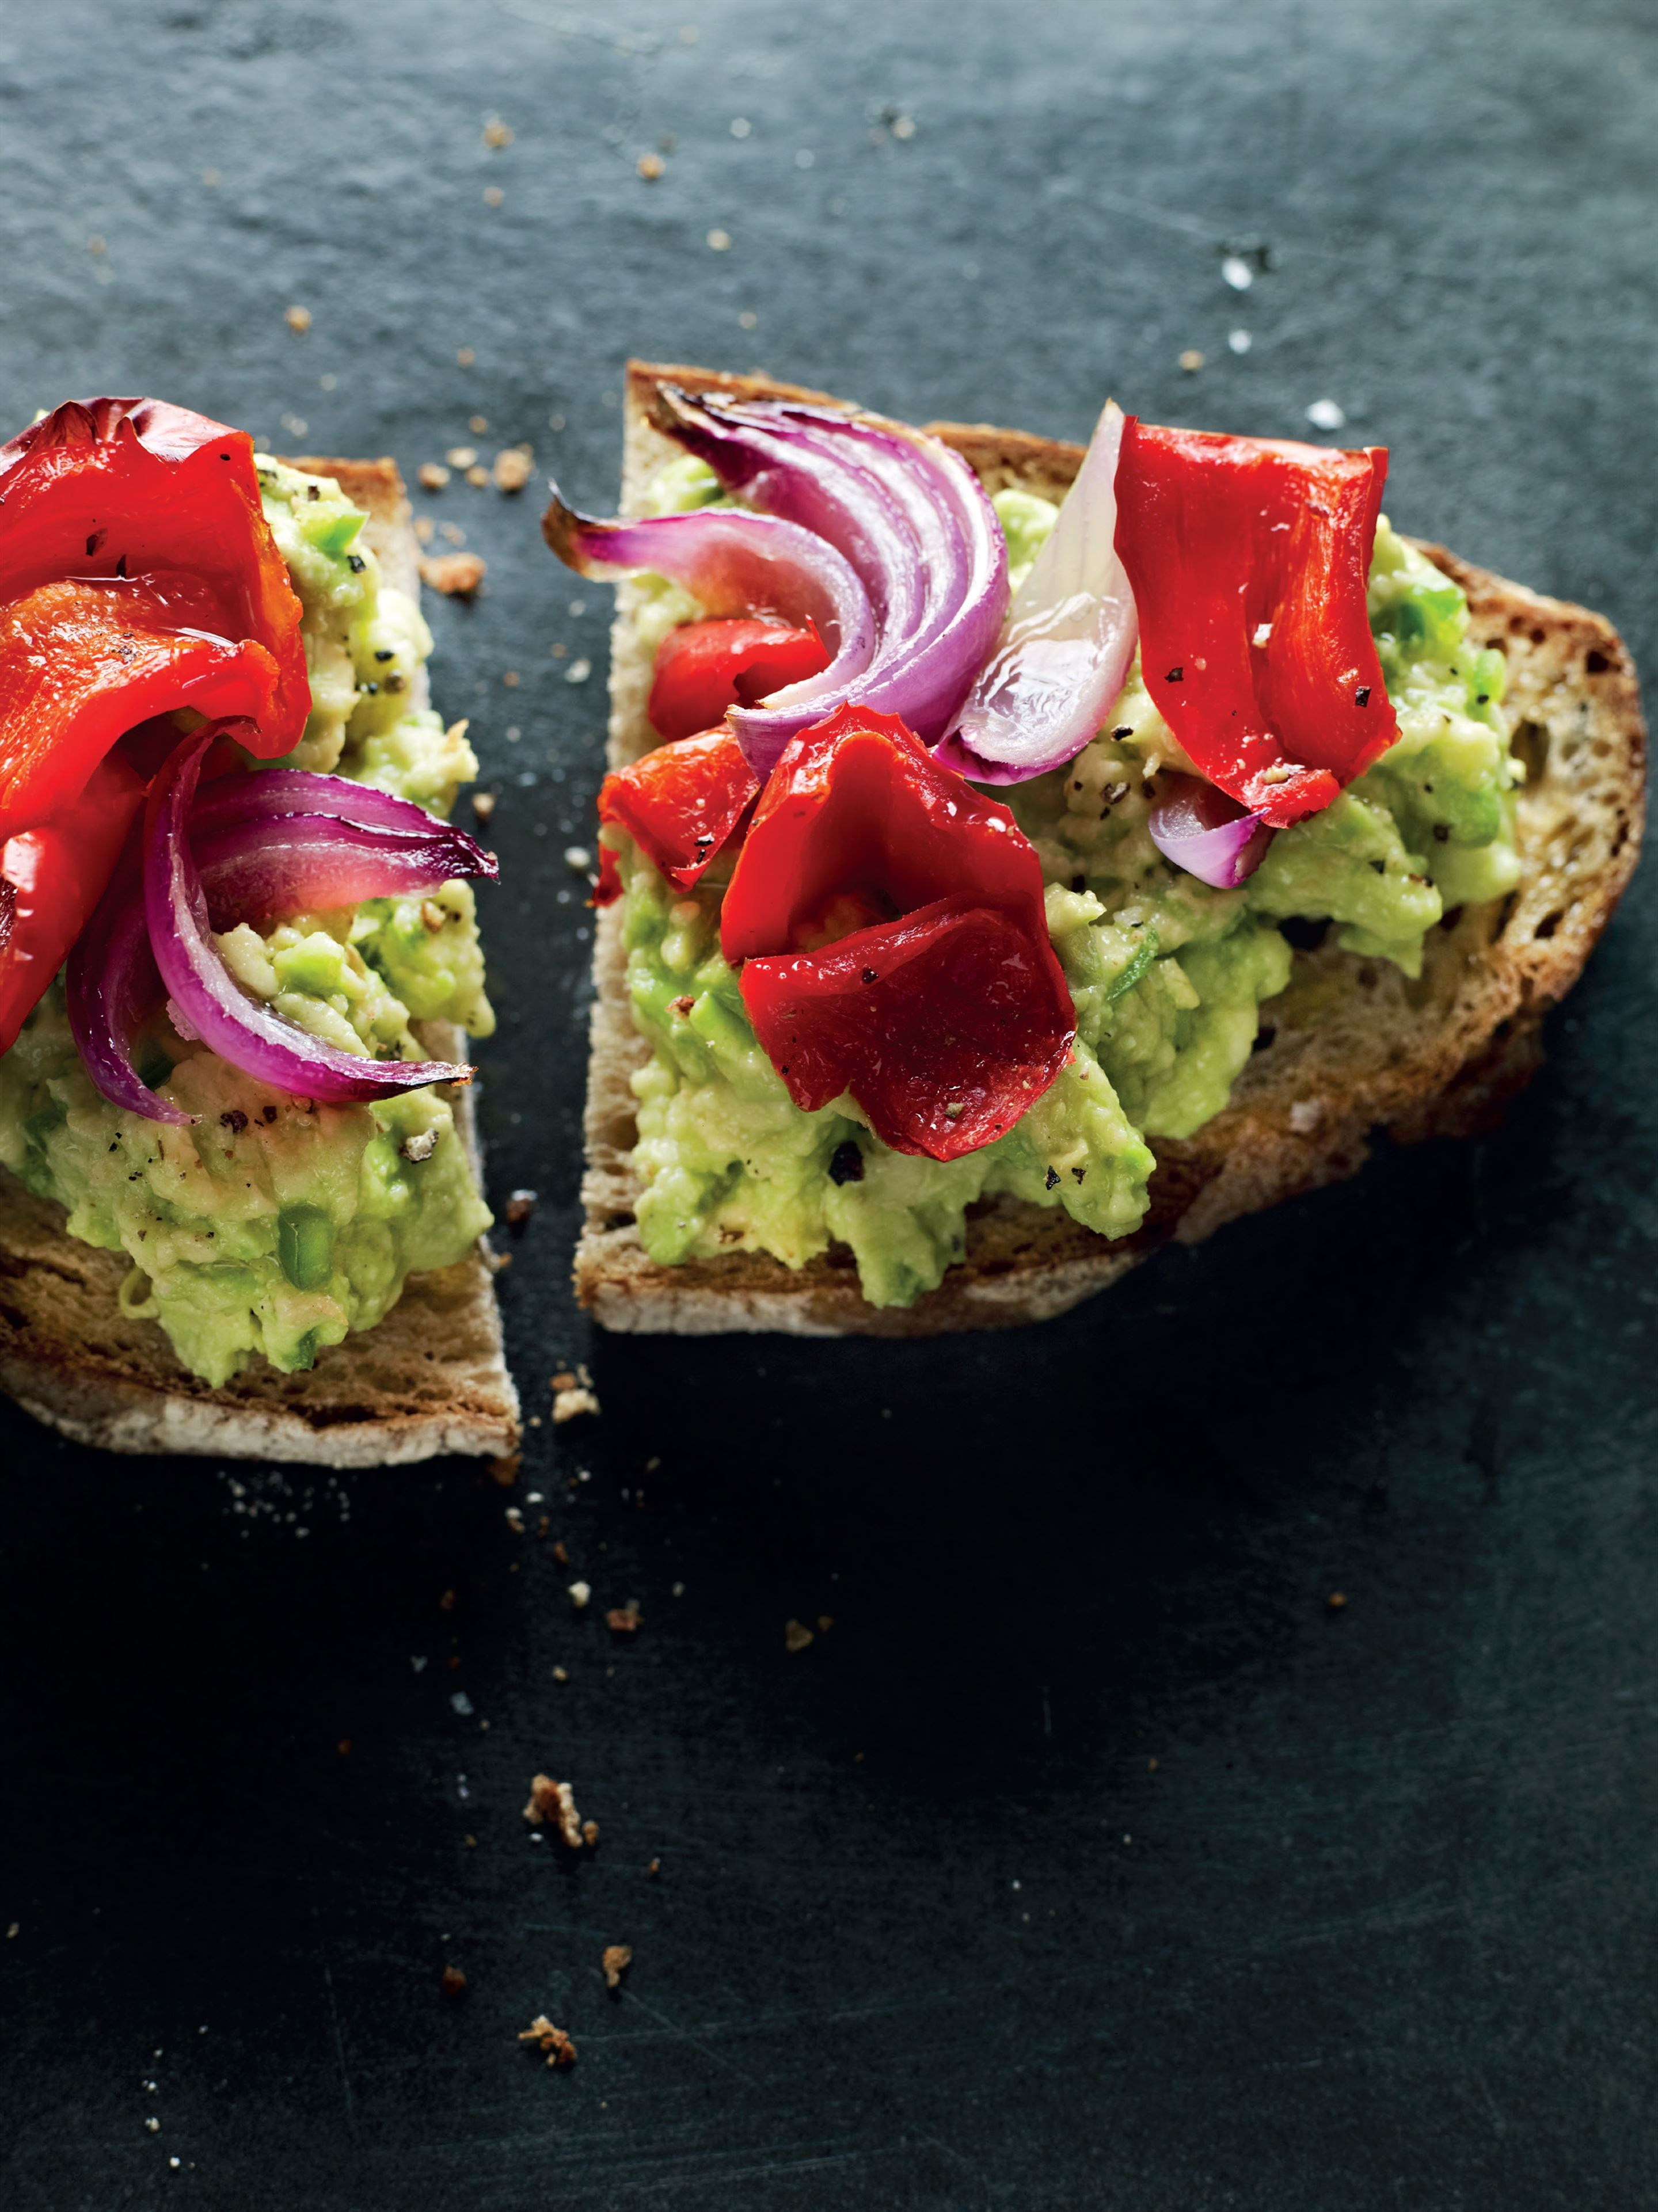 Roasted vegetable and guacamole open sandwich